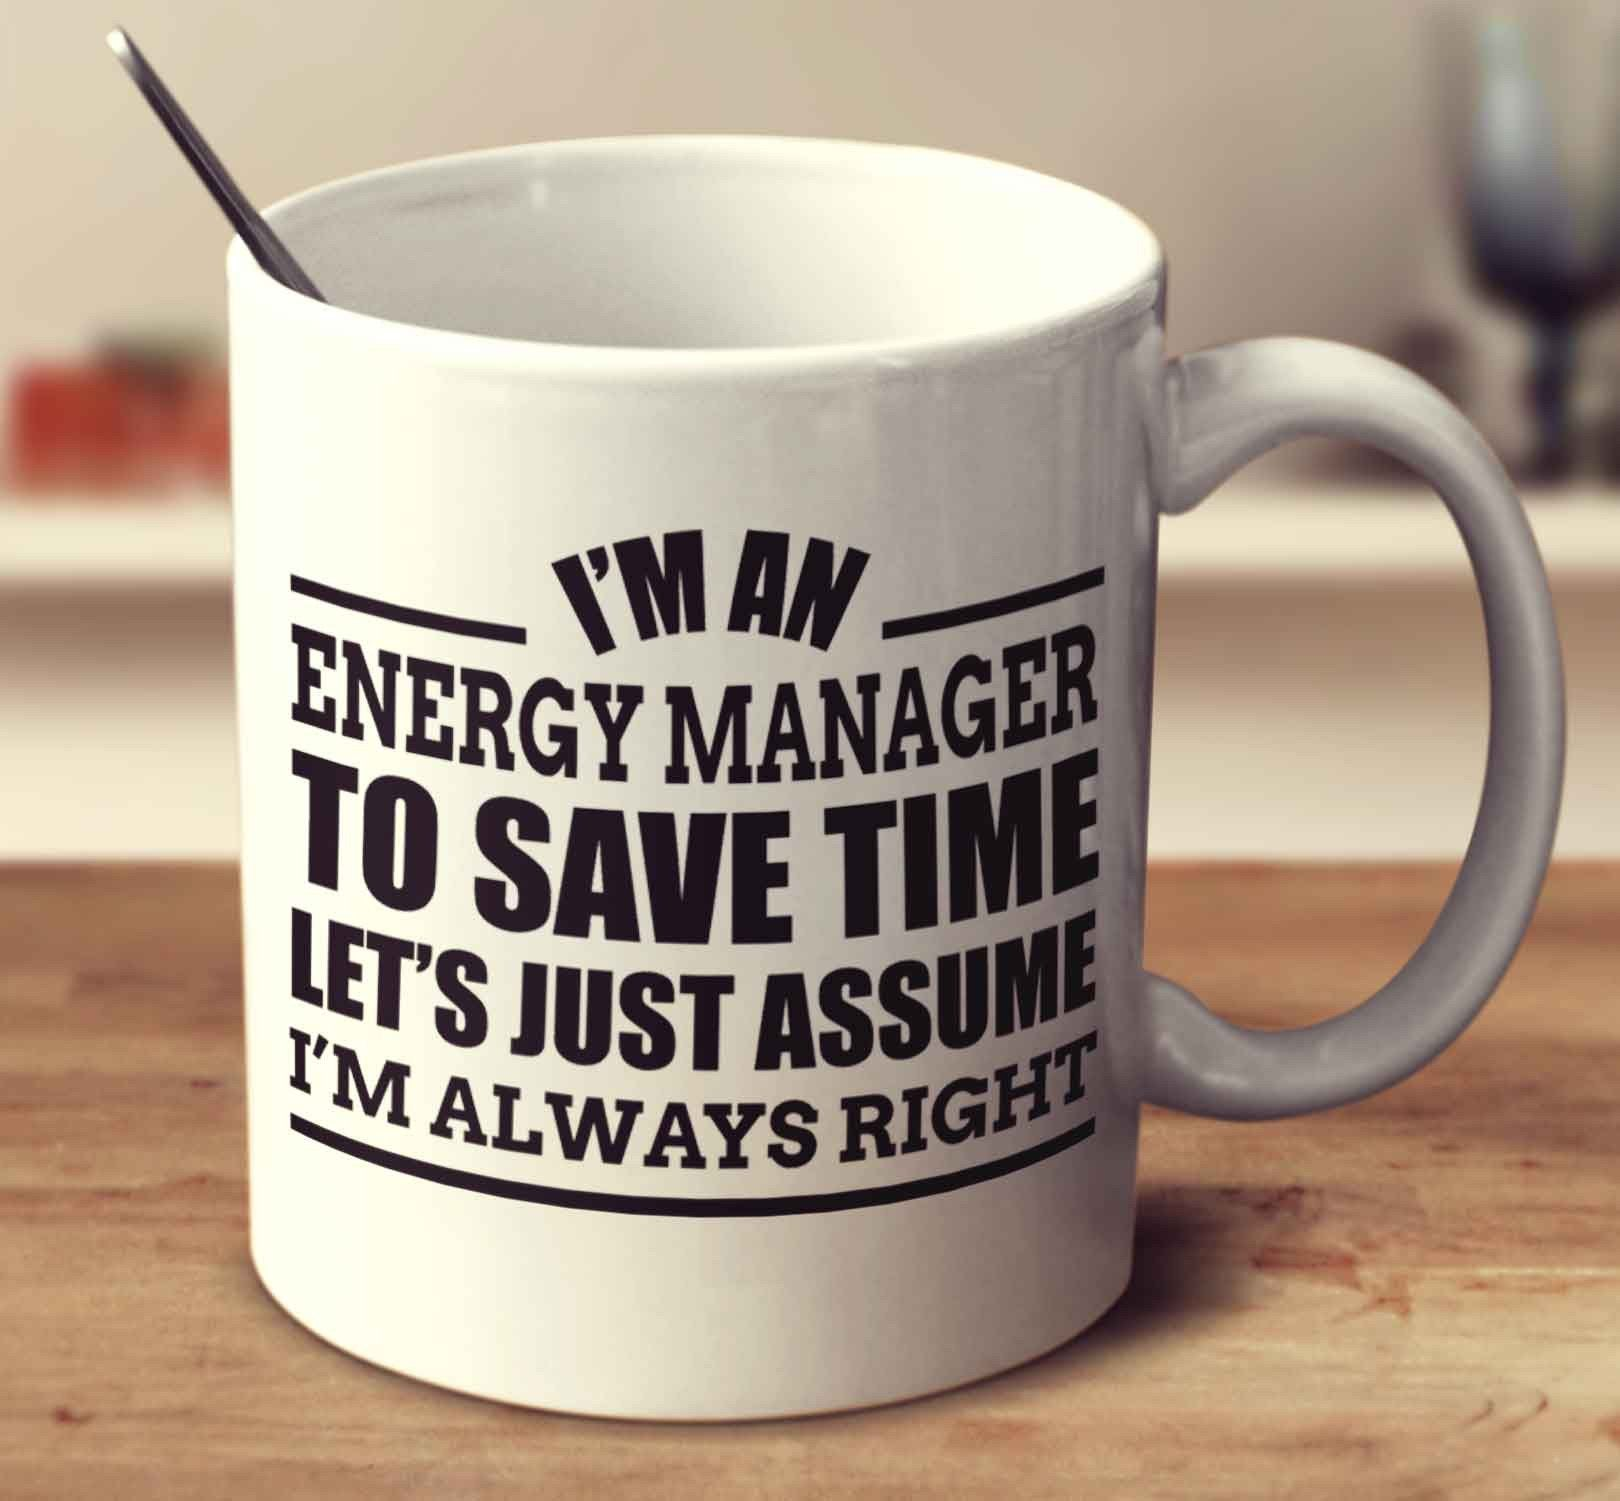 I'm An Energy Manager To Save Time Let's Just Assume I'm Always Right